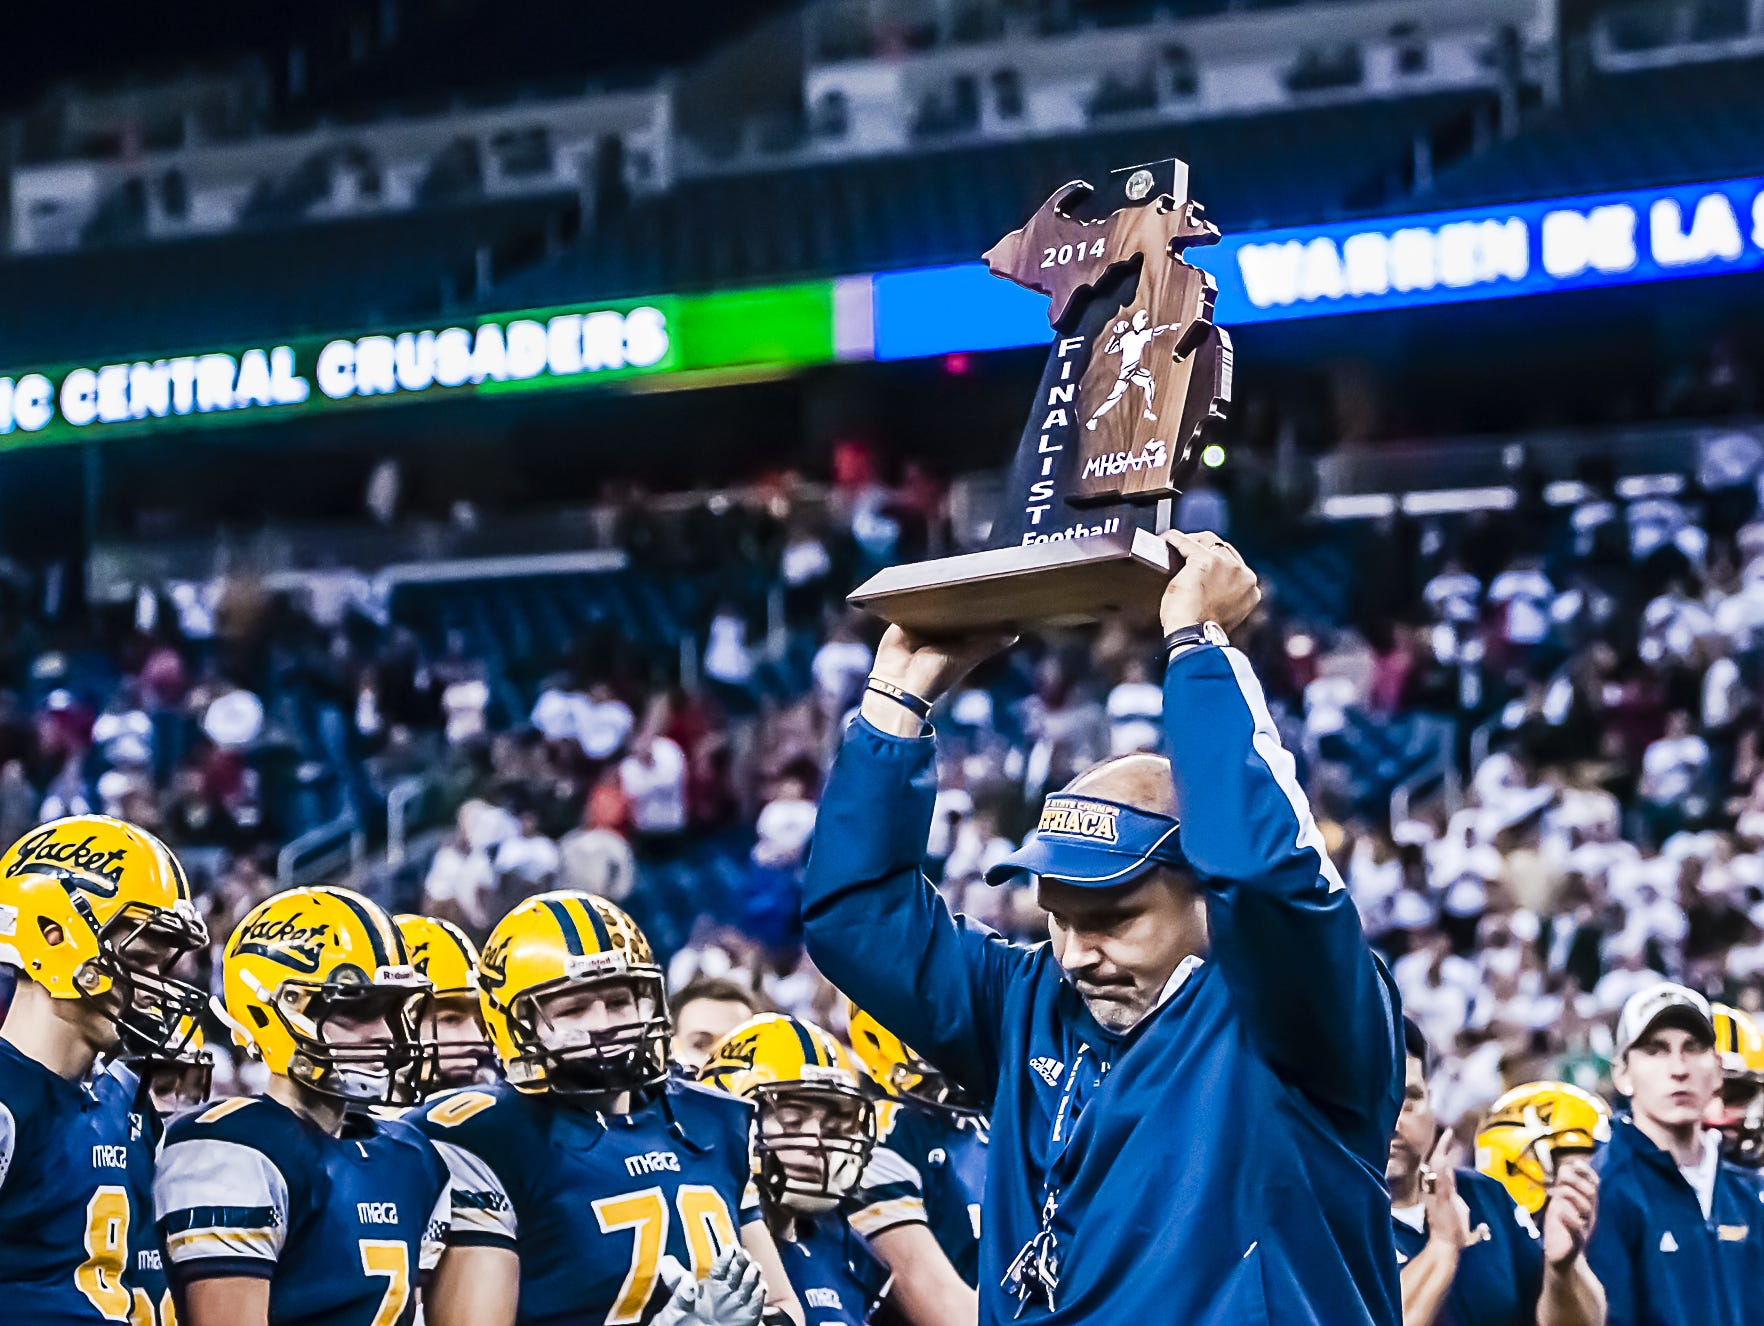 Ithaca Head Football Coach Terry Hessbrook displays the runner-up trophy after their Division 6 state championship loss to Monroe St. Mary Catholic Central Friday Nov. 28, 2014 at Ford Field in Detroit.